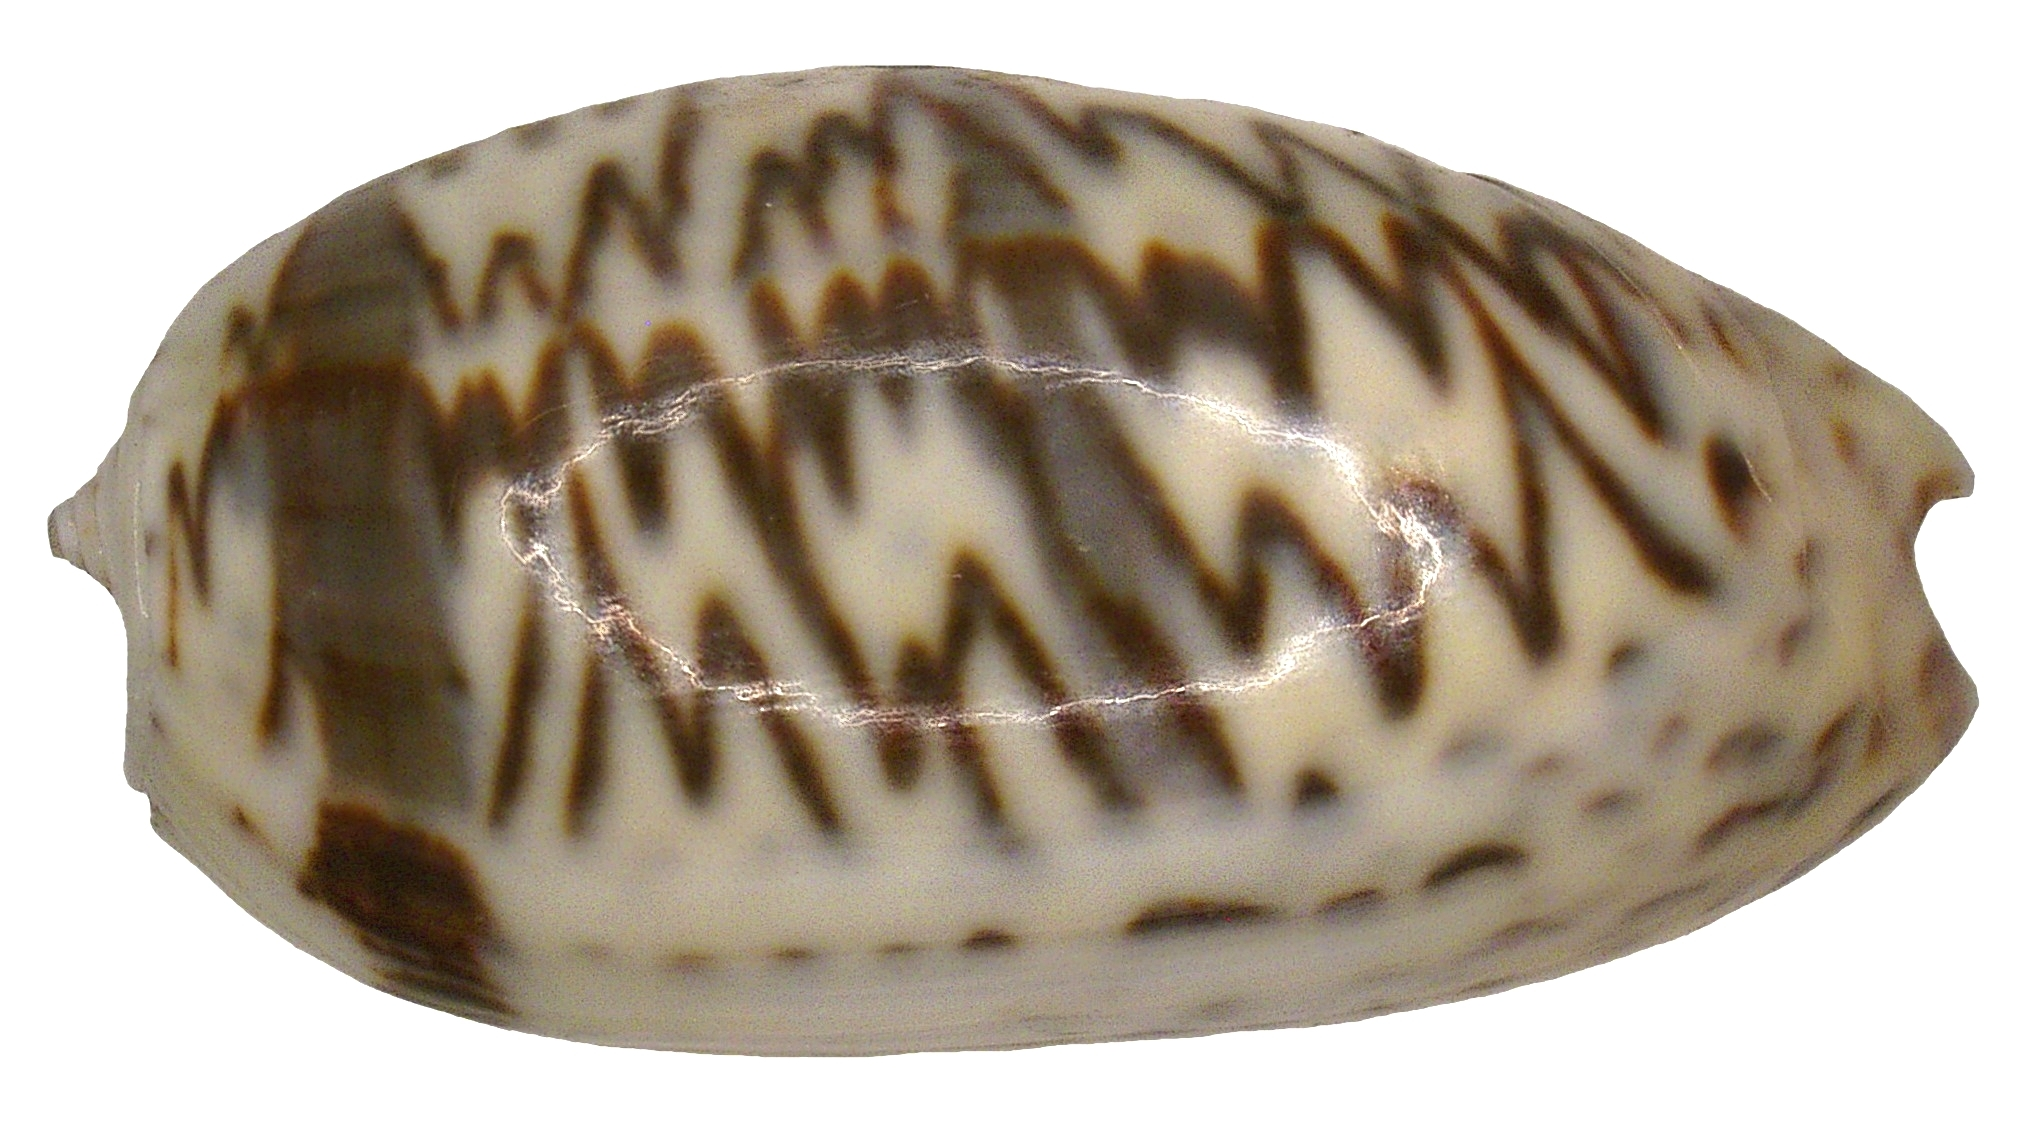 Image of inflated olive